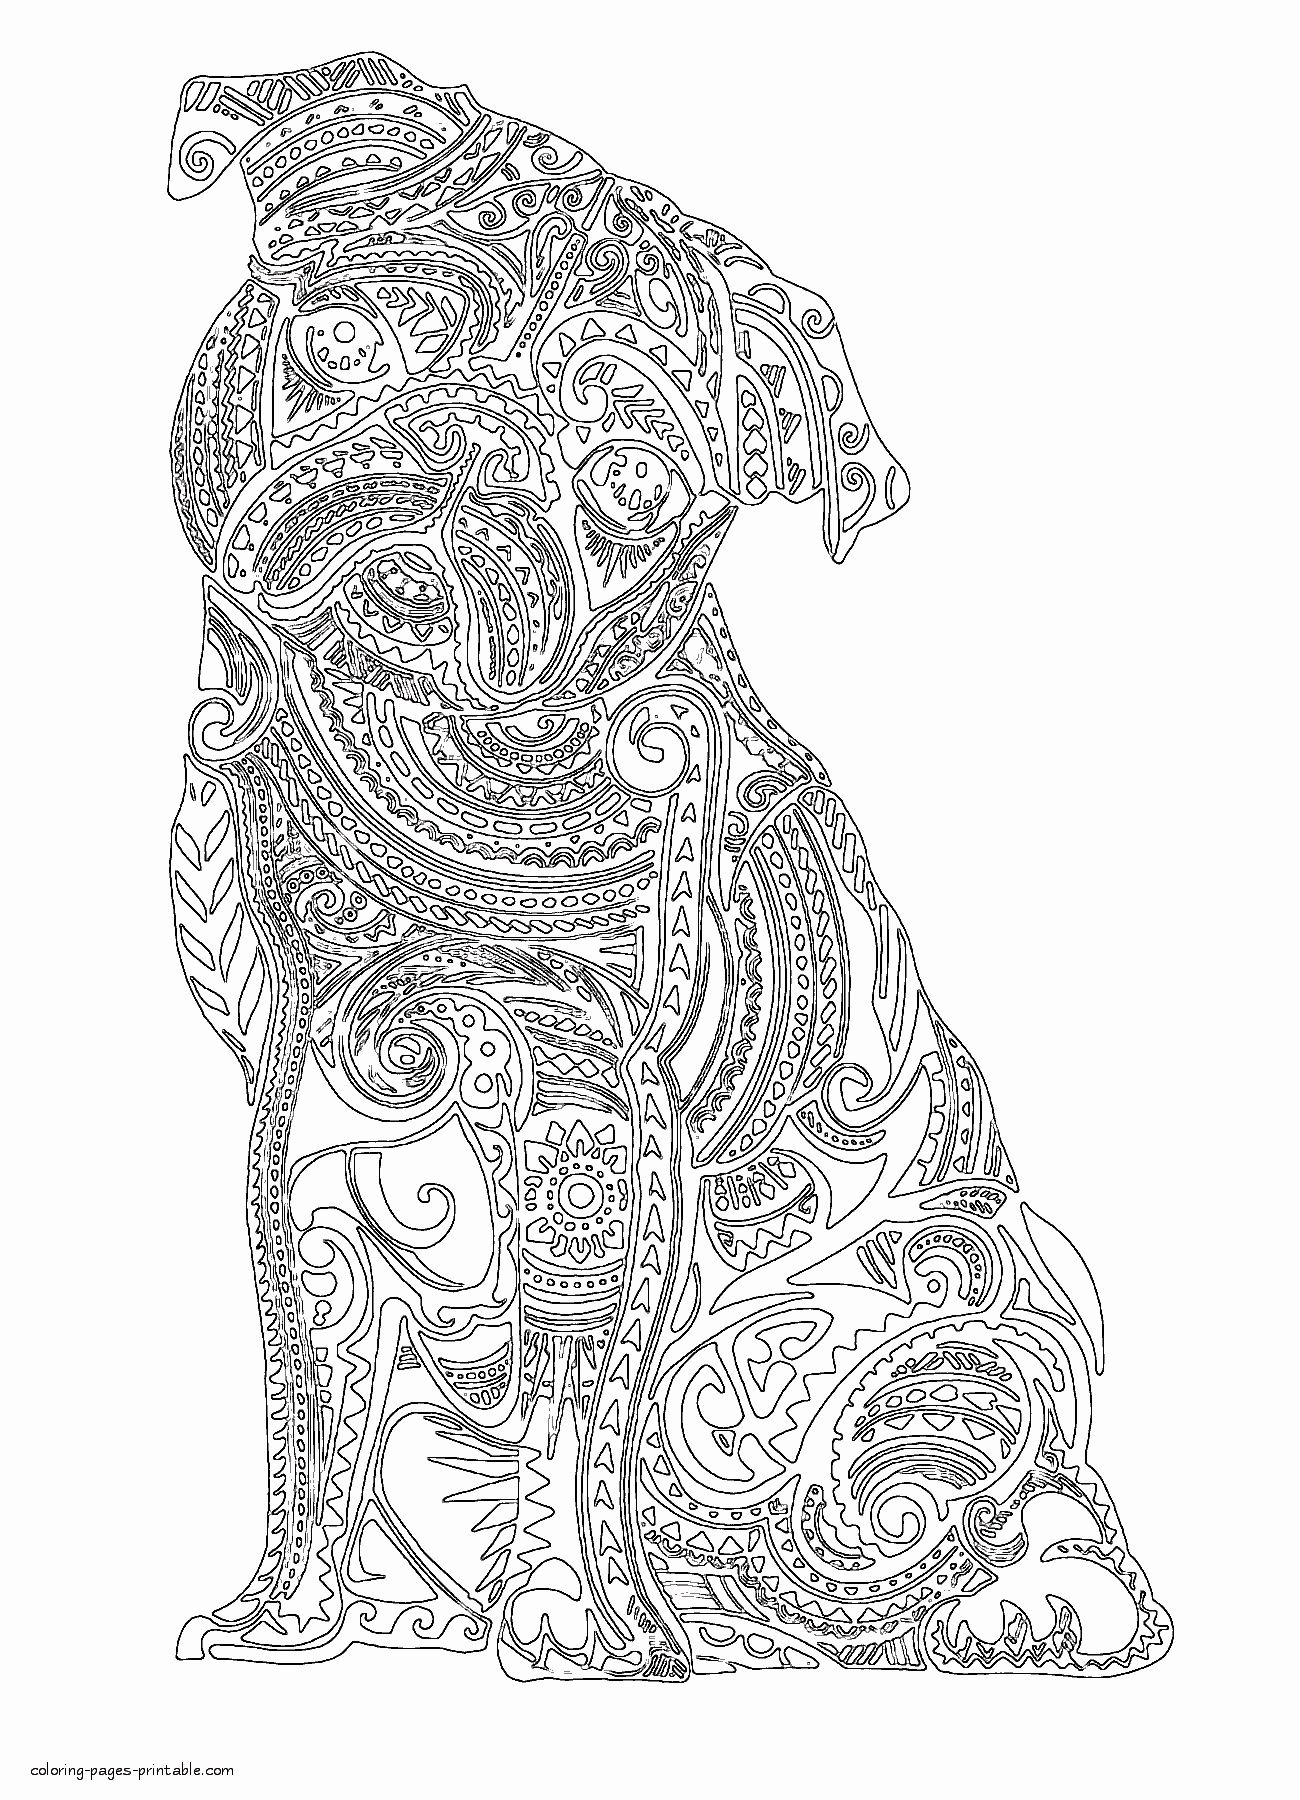 Hard Coloring Sheets For Adults Beautiful Coloring Pages Coloring Pages Hard Animals Marvelous [ 1800 x 1300 Pixel ]